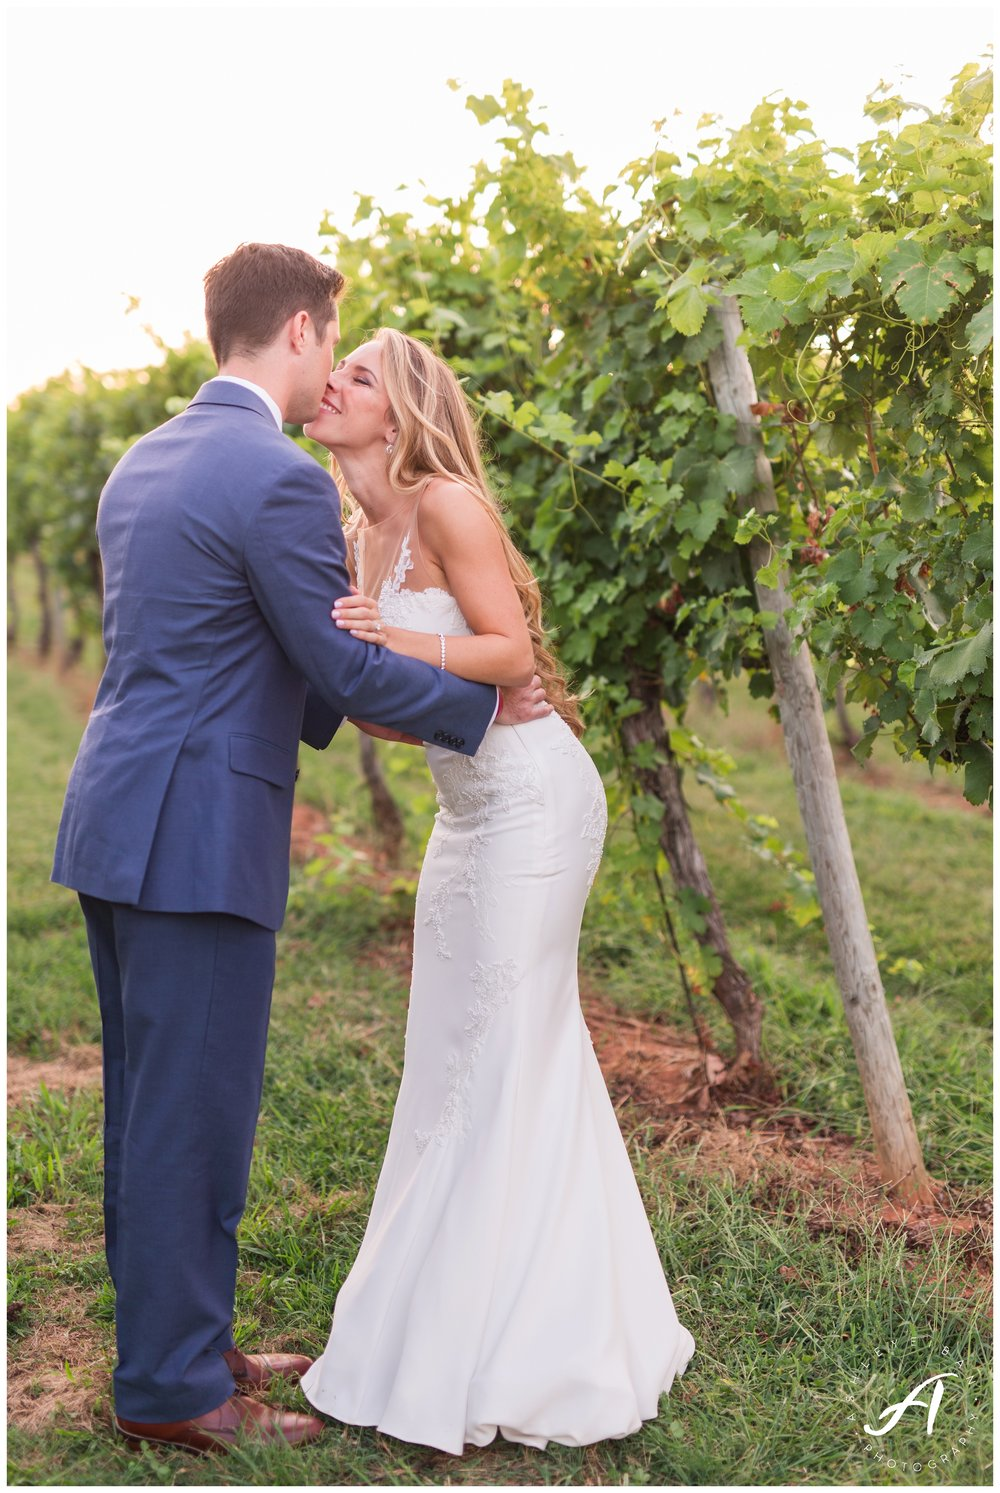 Charlottesville, VA Wedding Photographer || Keswick Vineyard Wedding || Colorful Vineyard Wedding || Ashley Eiban Photography || www.ashleyeiban.com